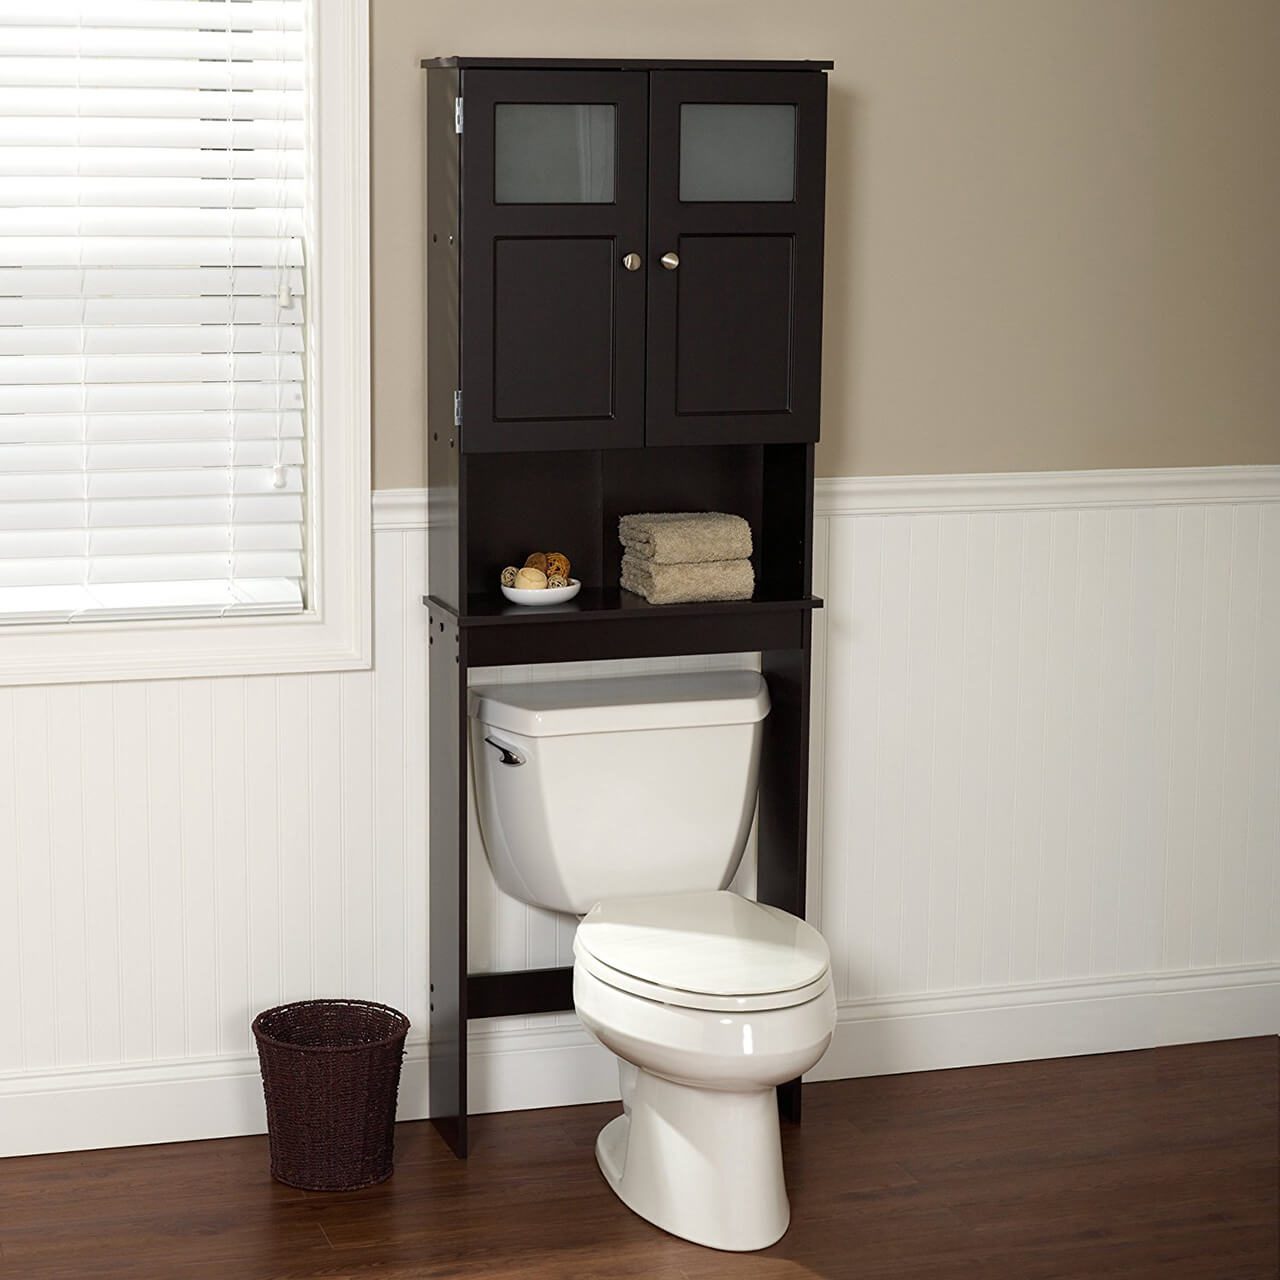 Zenna Home Bathroom Spacesaver. Some beautiful bathroom storage cabinets ...